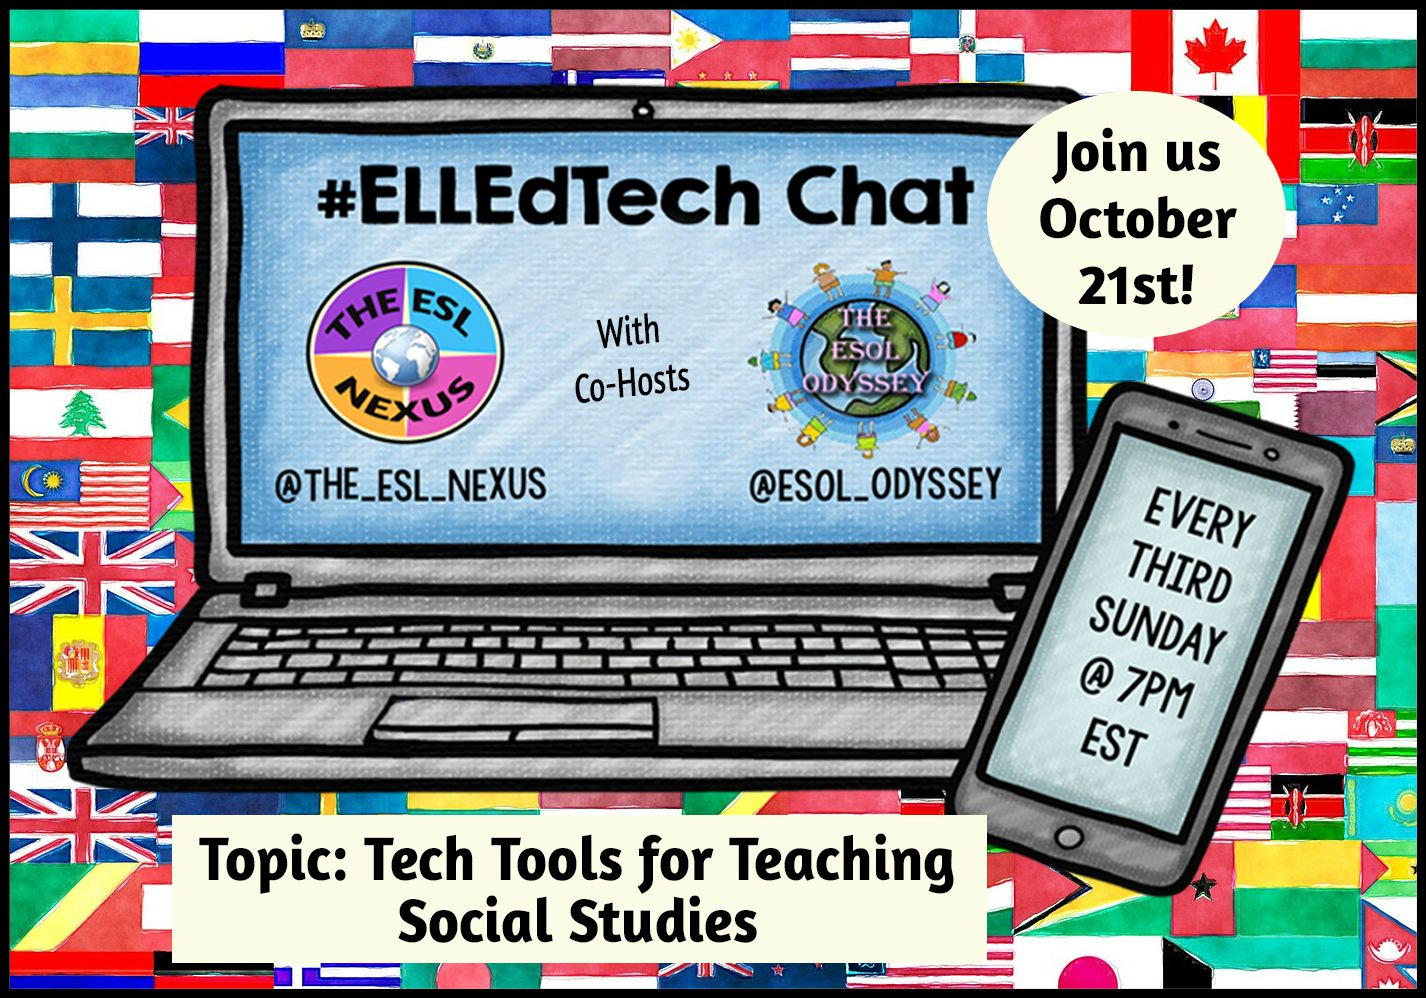 You are invited to join the next #ELLEdTech Twitter chat on October 21st to discuss using Tech Tools to Teach Social Studies! | The ESL Nexus